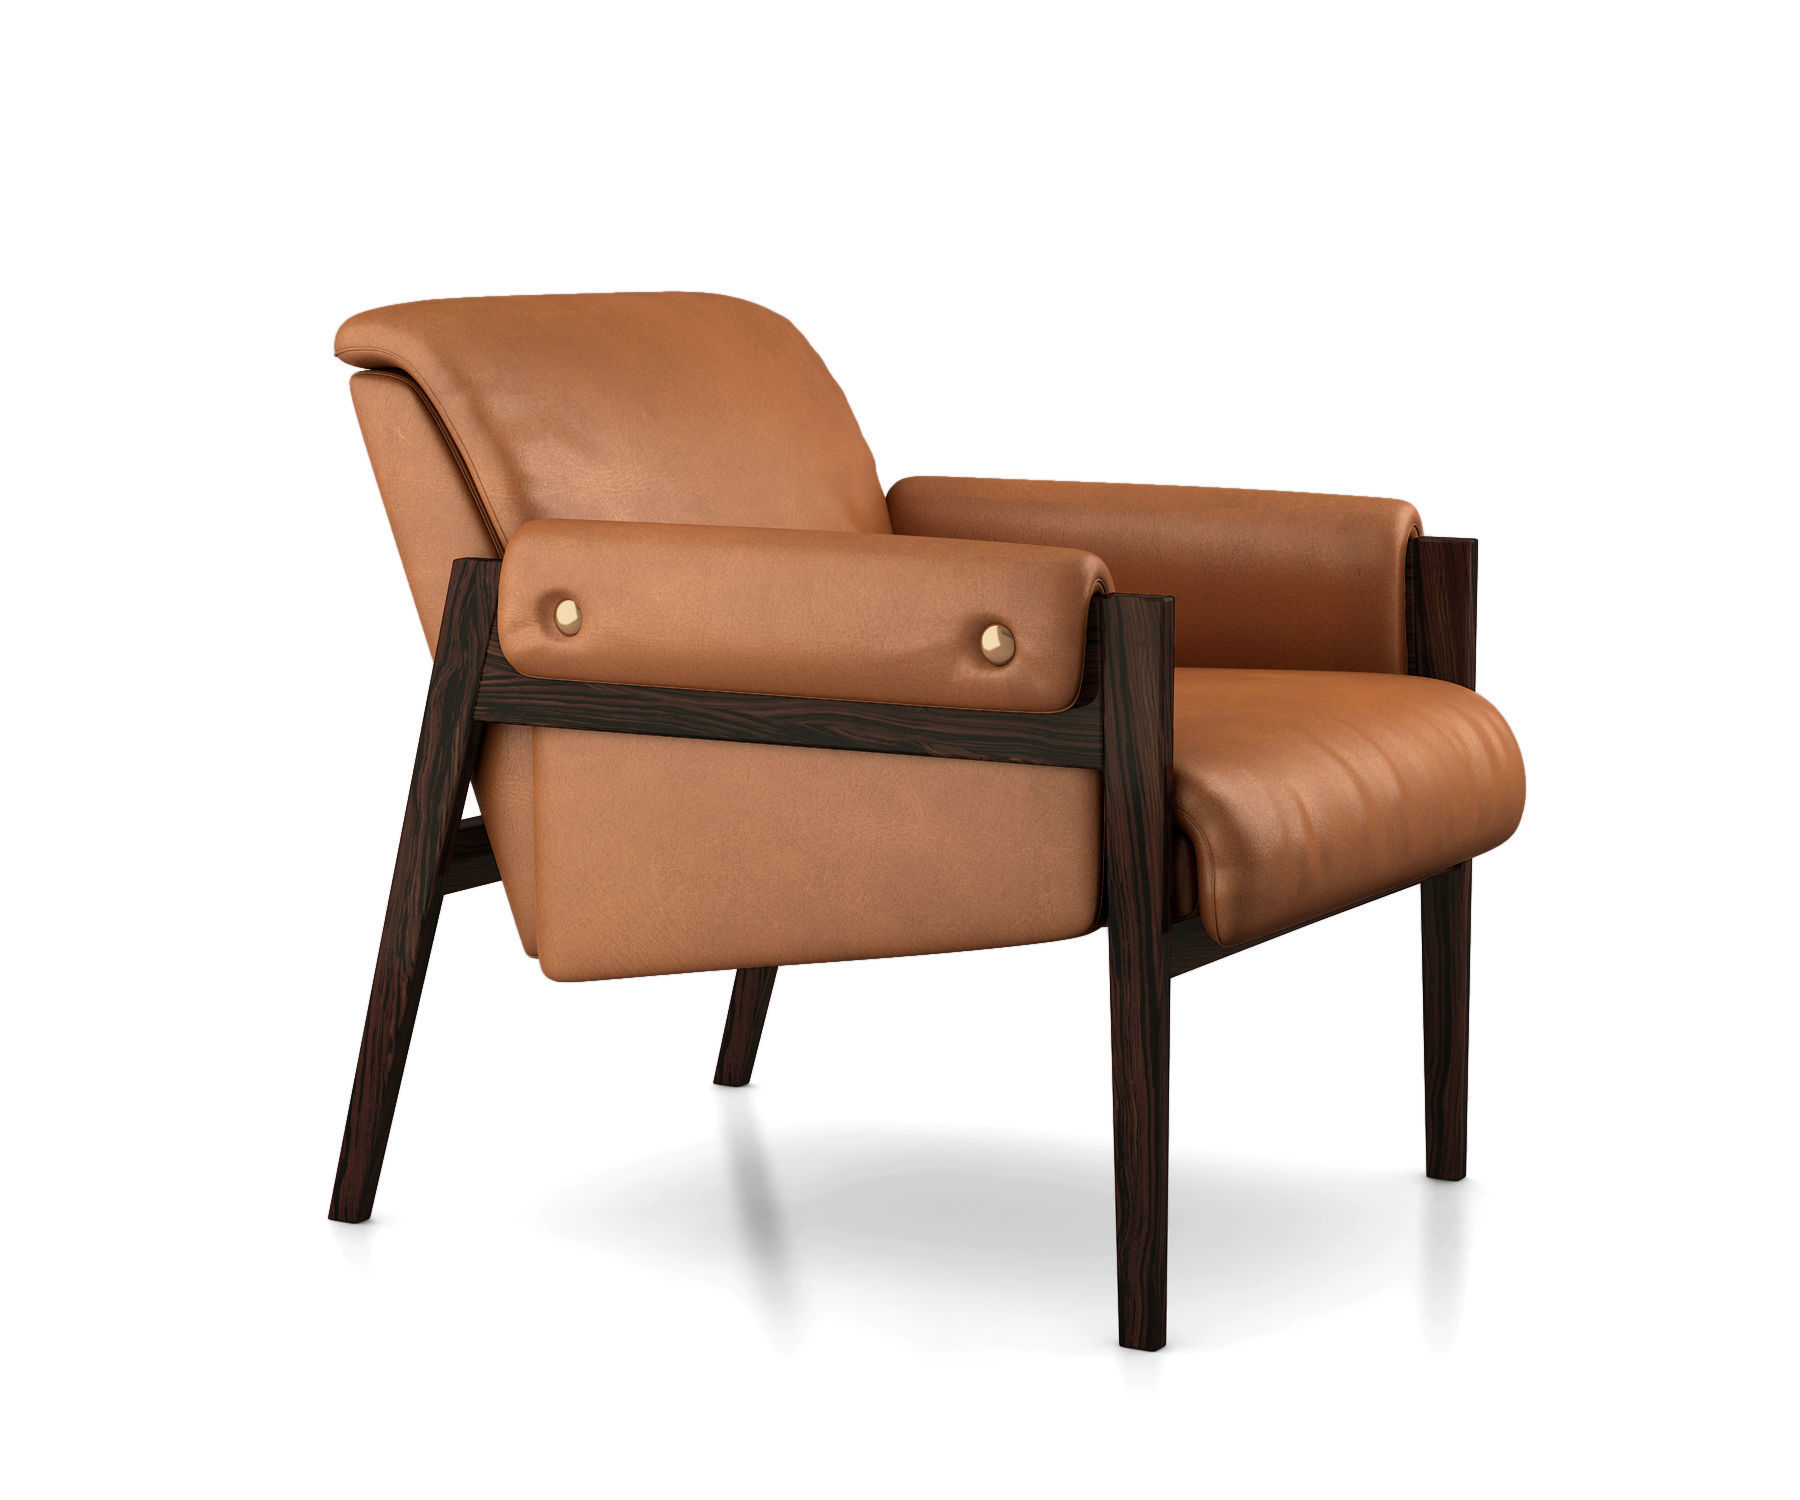 Fabulous Stanton Leather Chair By West Elm 3D Model Download Free Architecture Designs Sospemadebymaigaardcom